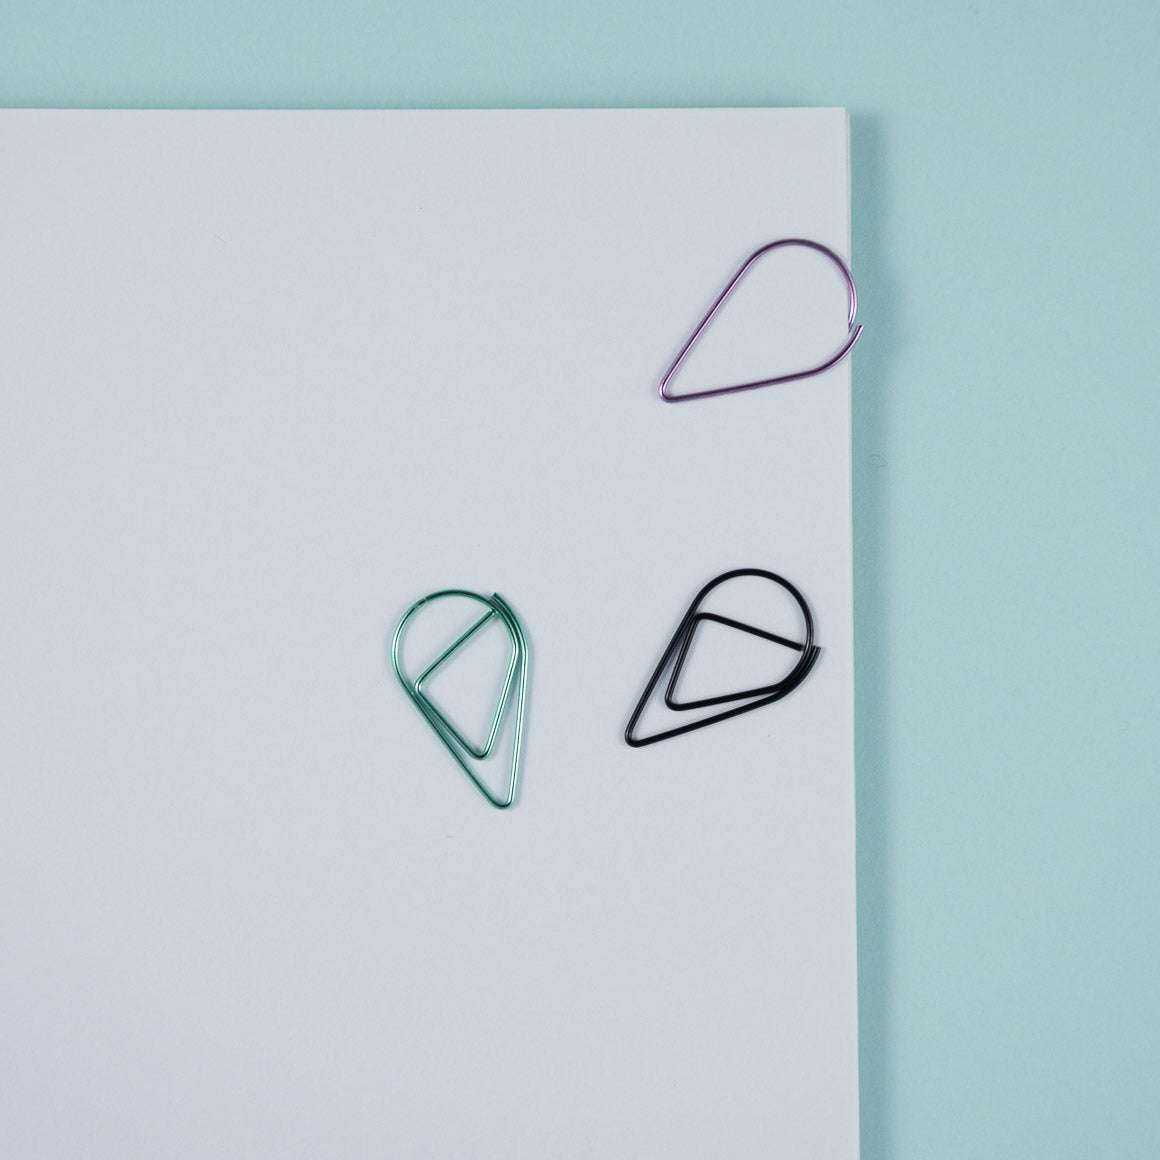 rain drop shaped paperclip